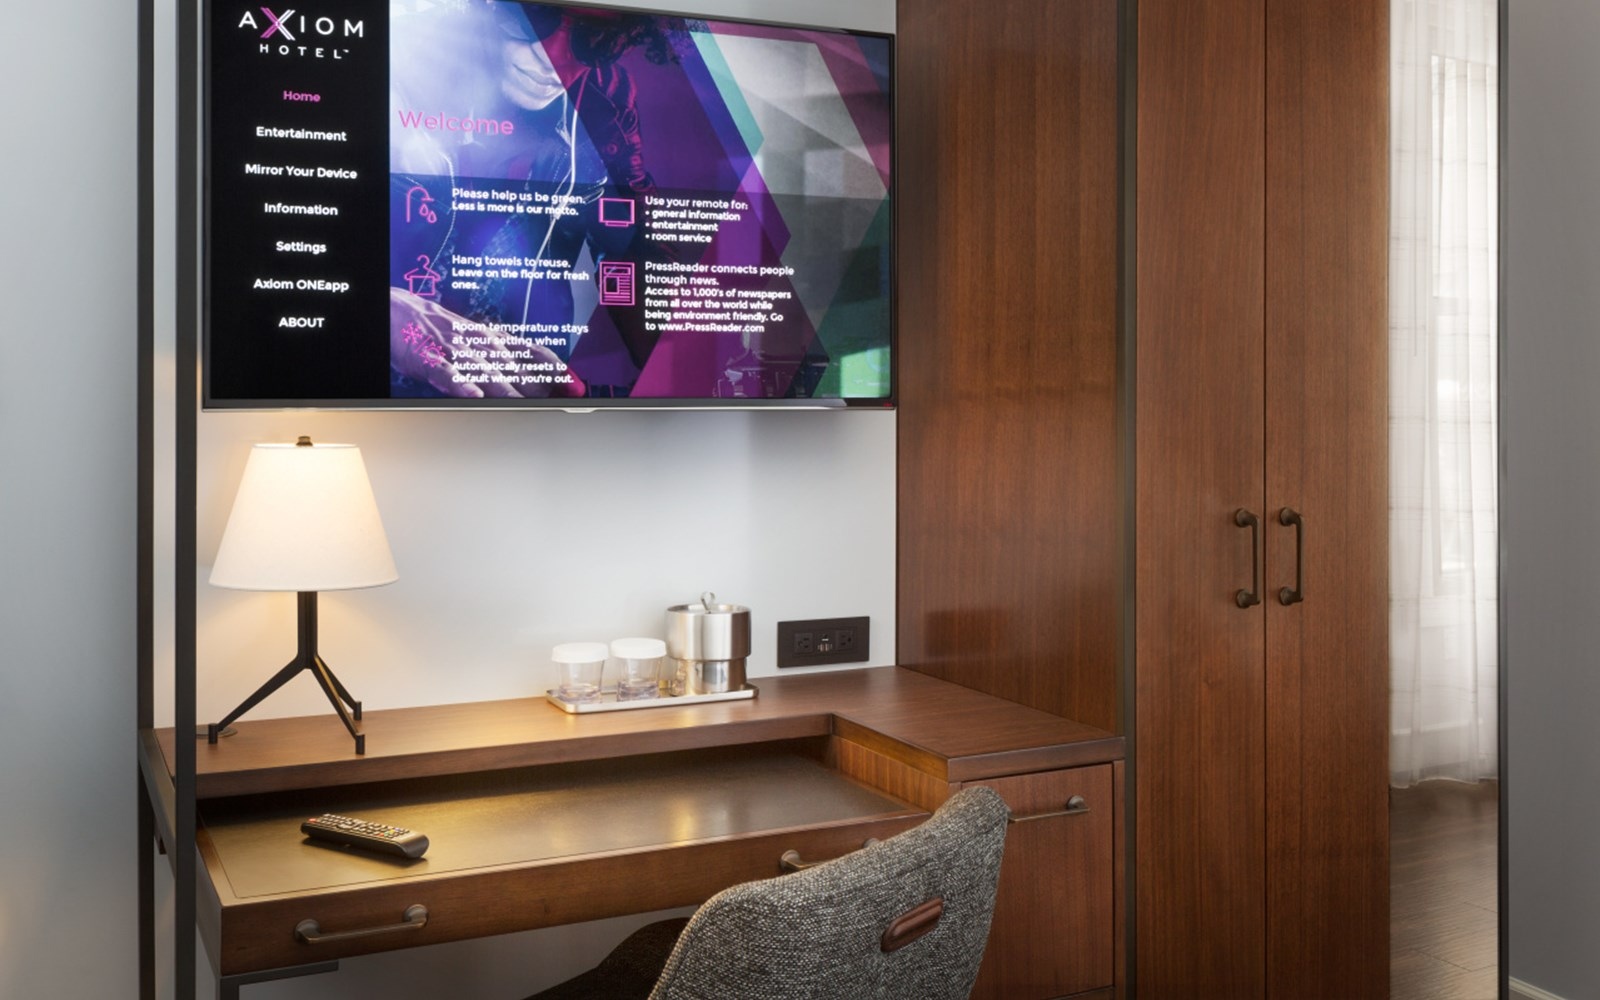 Desk area in guest room with large electronic screen with Axiom Hotel welcome and information